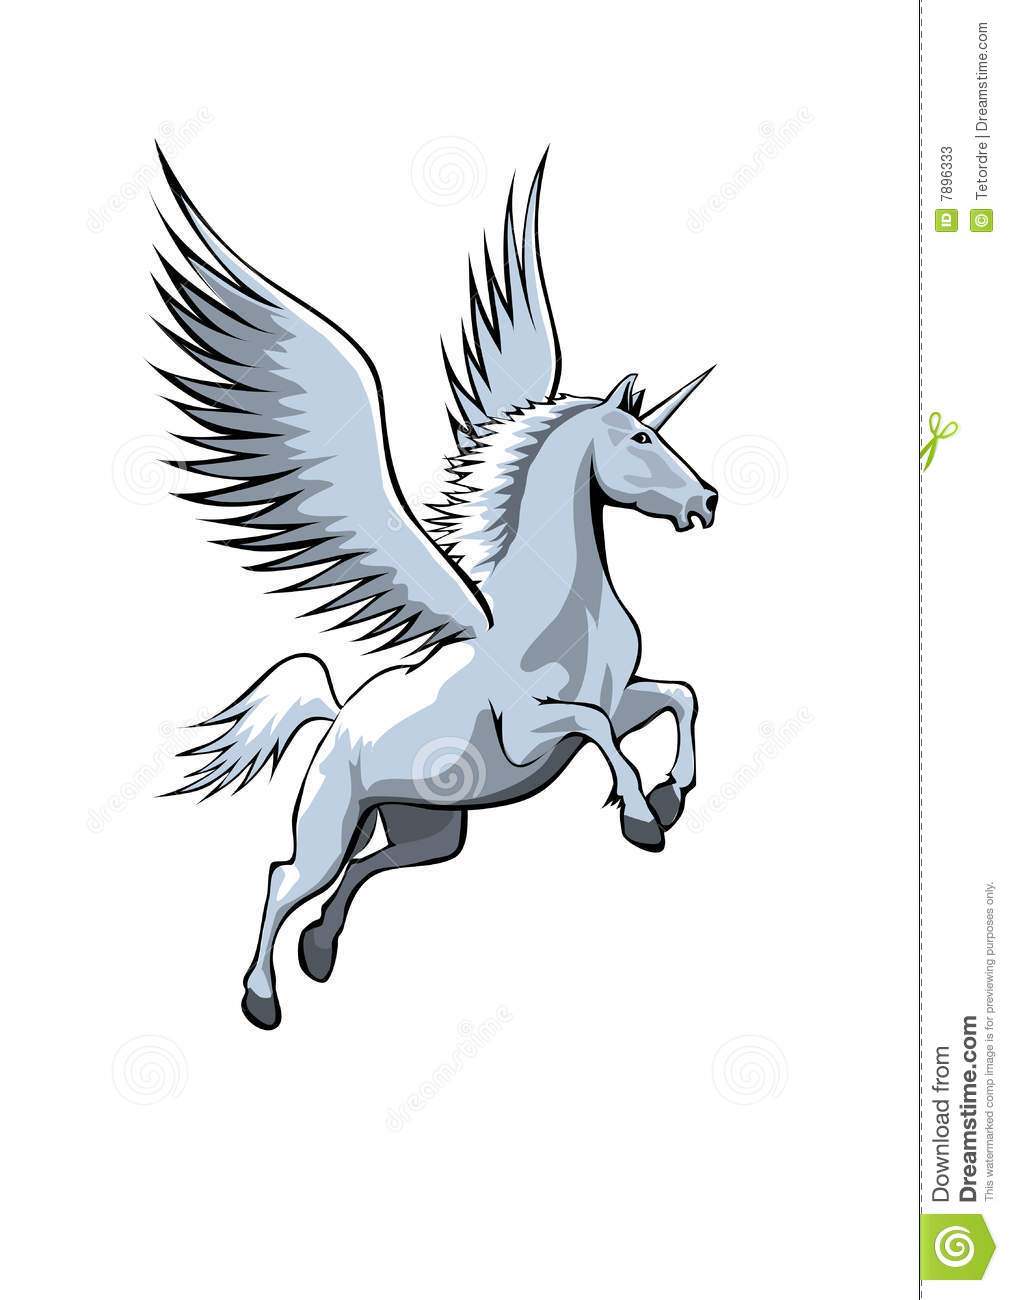 Unicorn With Wings Stock Photos - Image: 7896333